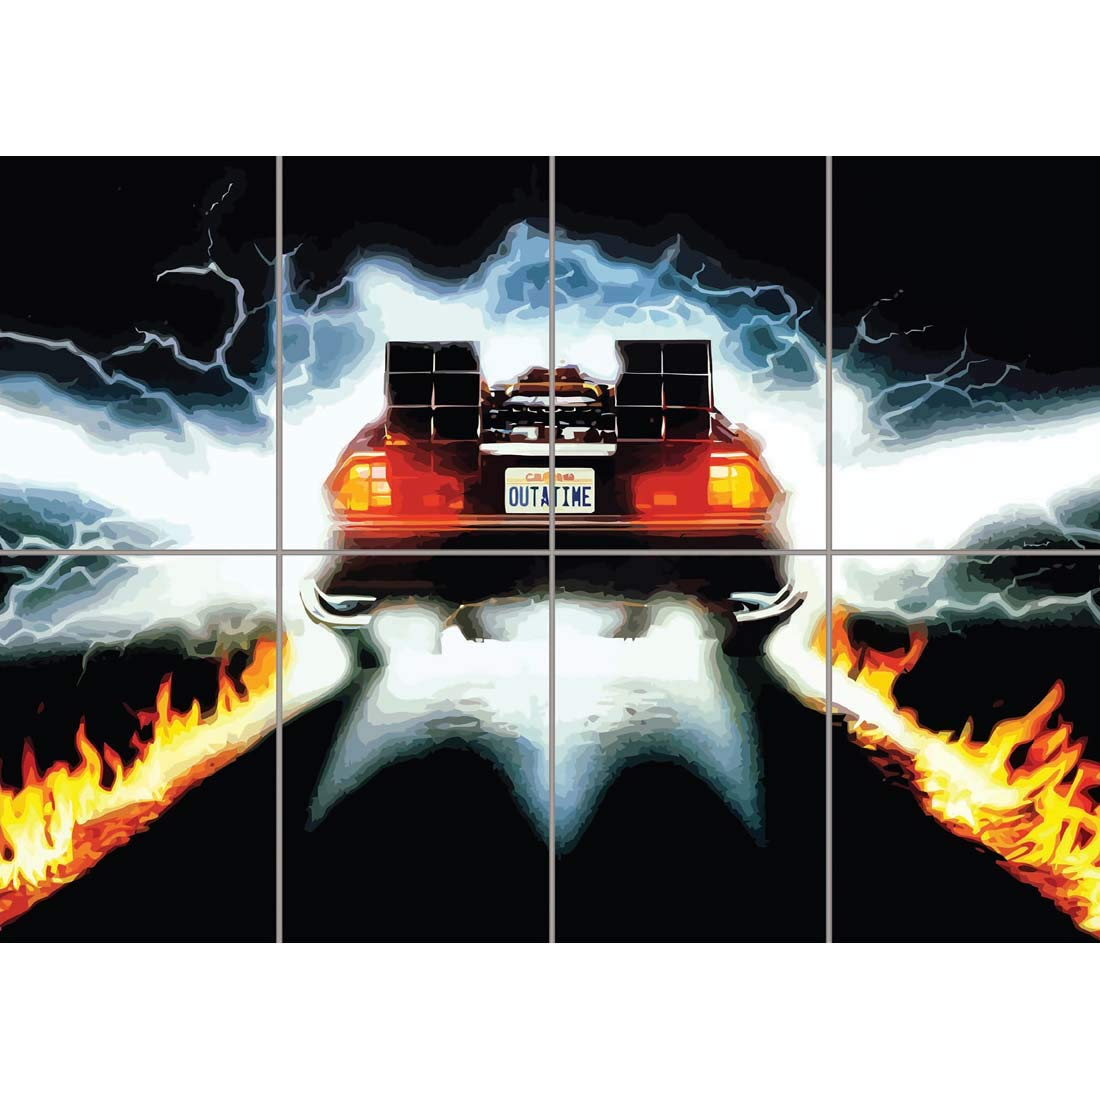 DeLorean Flames 8 pc Giant Wall Poster 118.8 x 84 cm (46.7 x 33 inches).